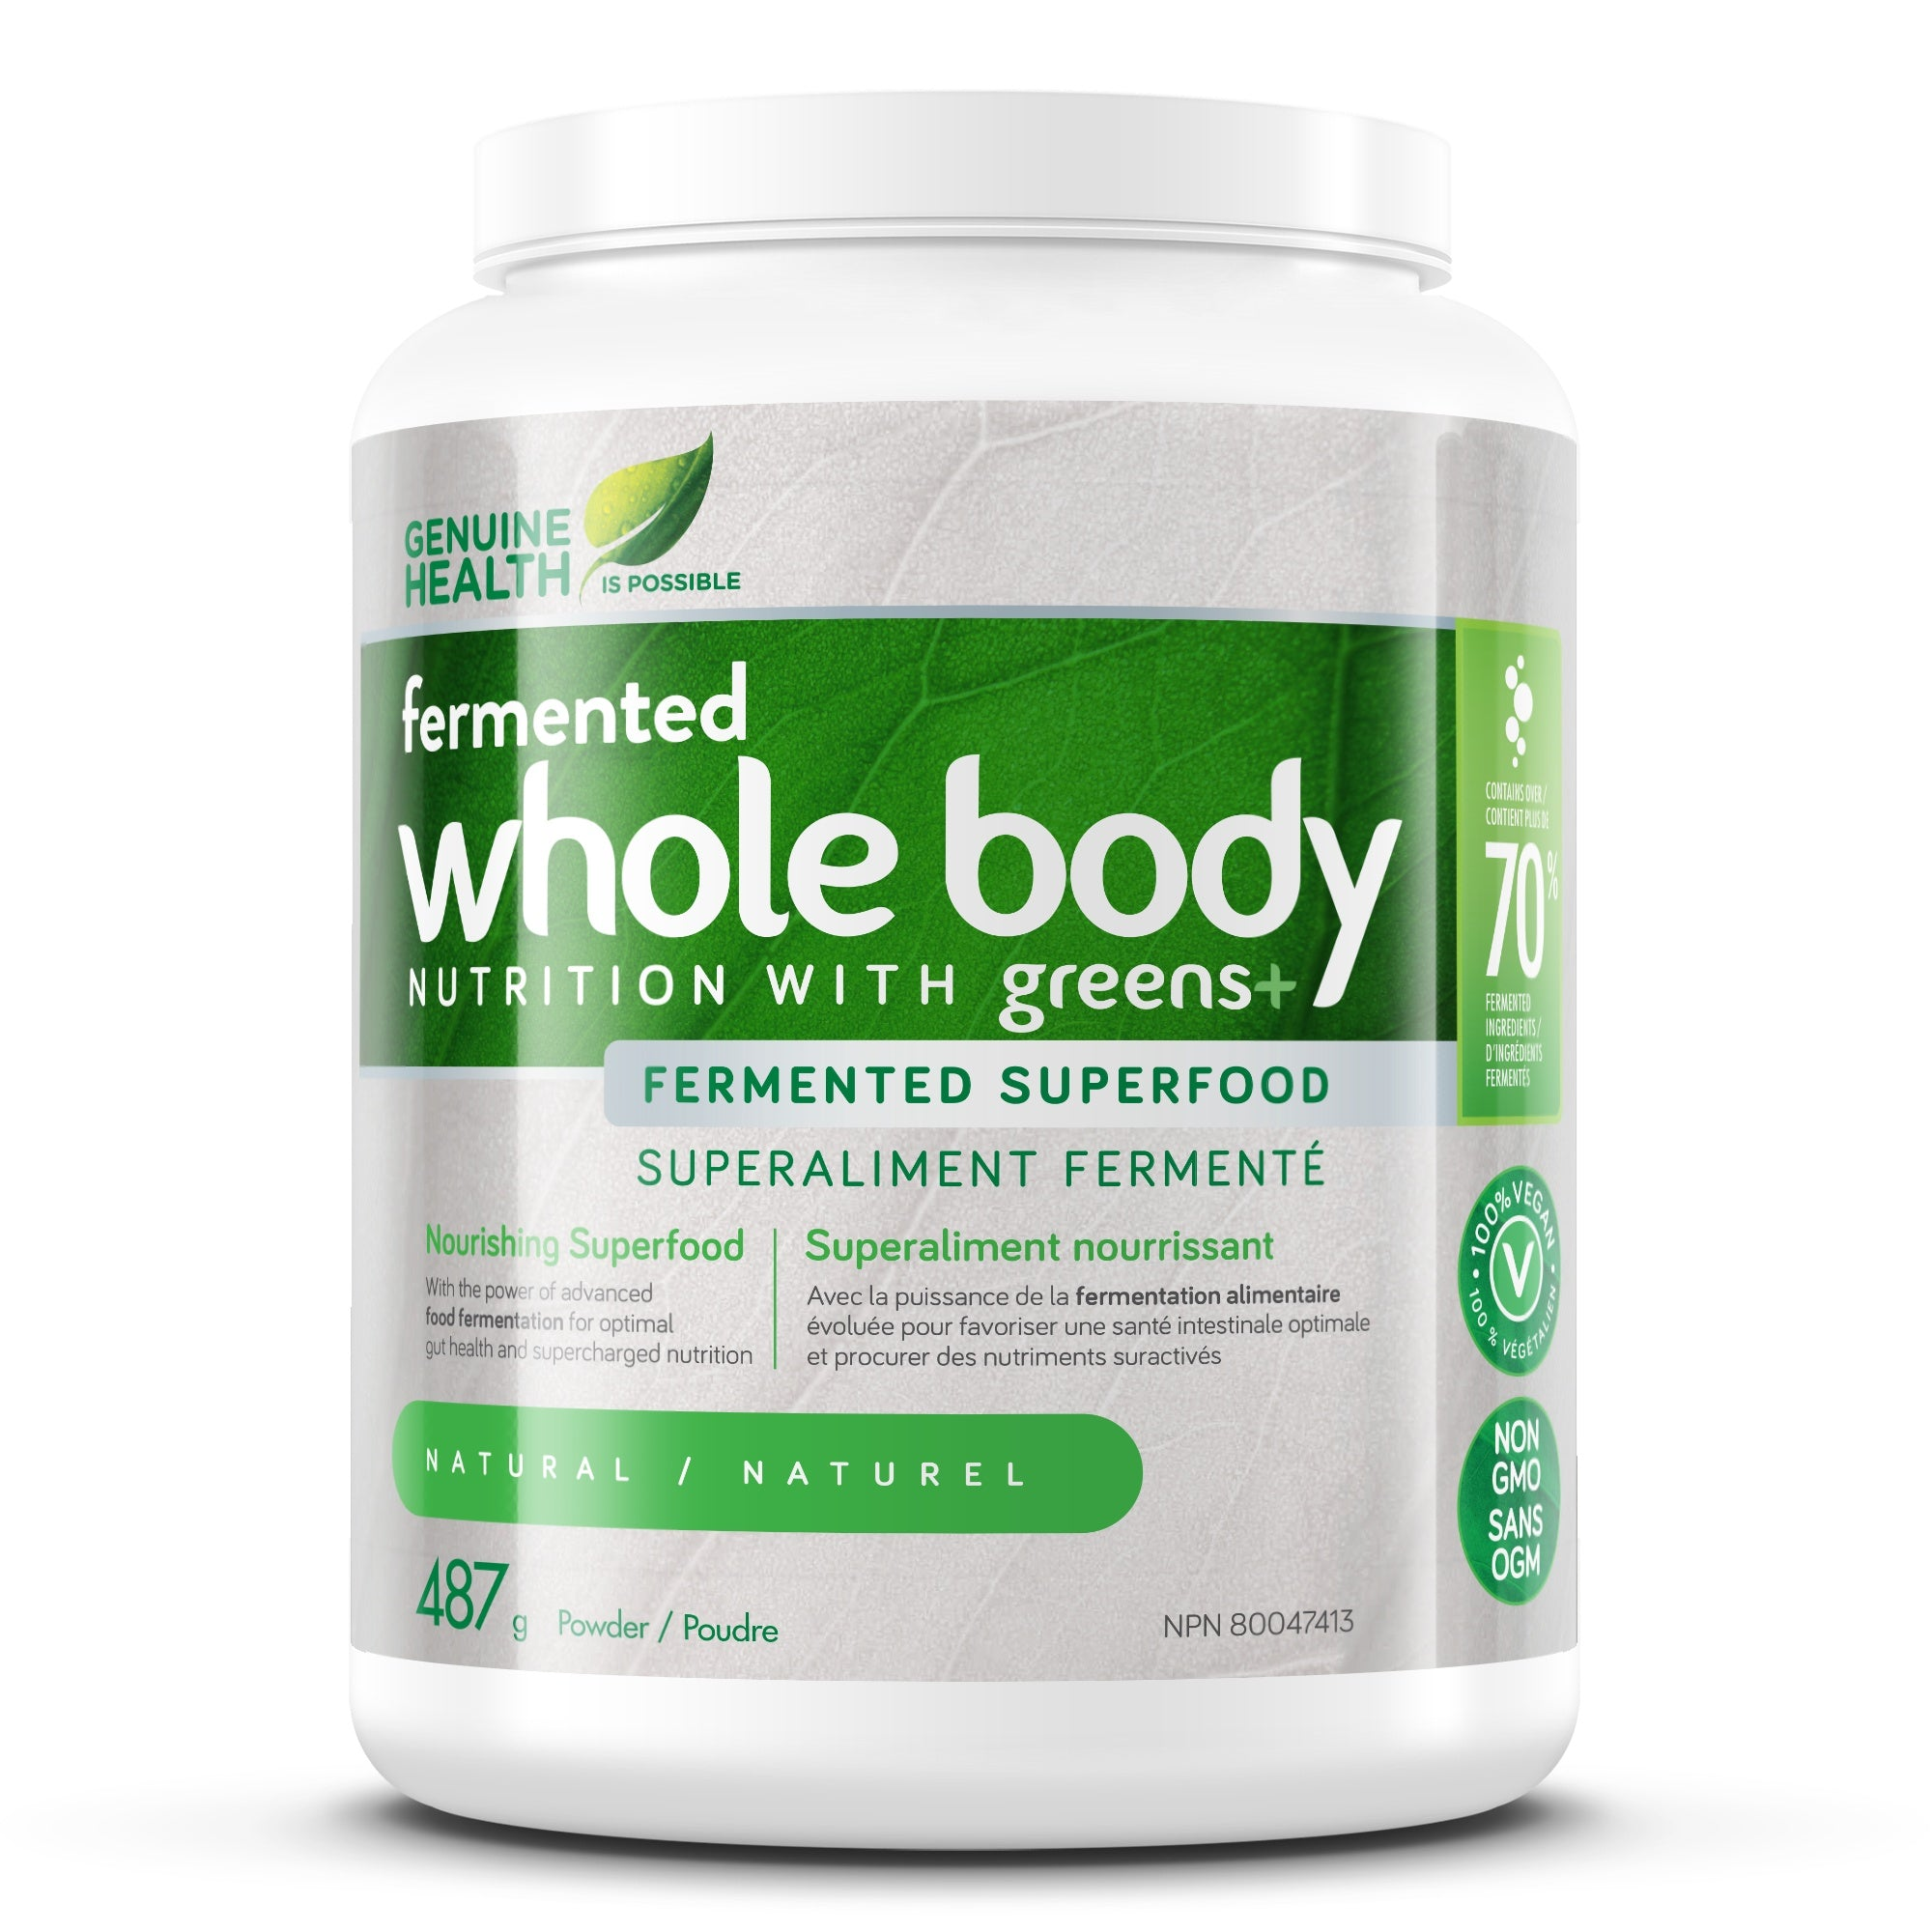 Supplements & Vitamins - Genuine Health - Greens+ Whole Body - Original, 487g